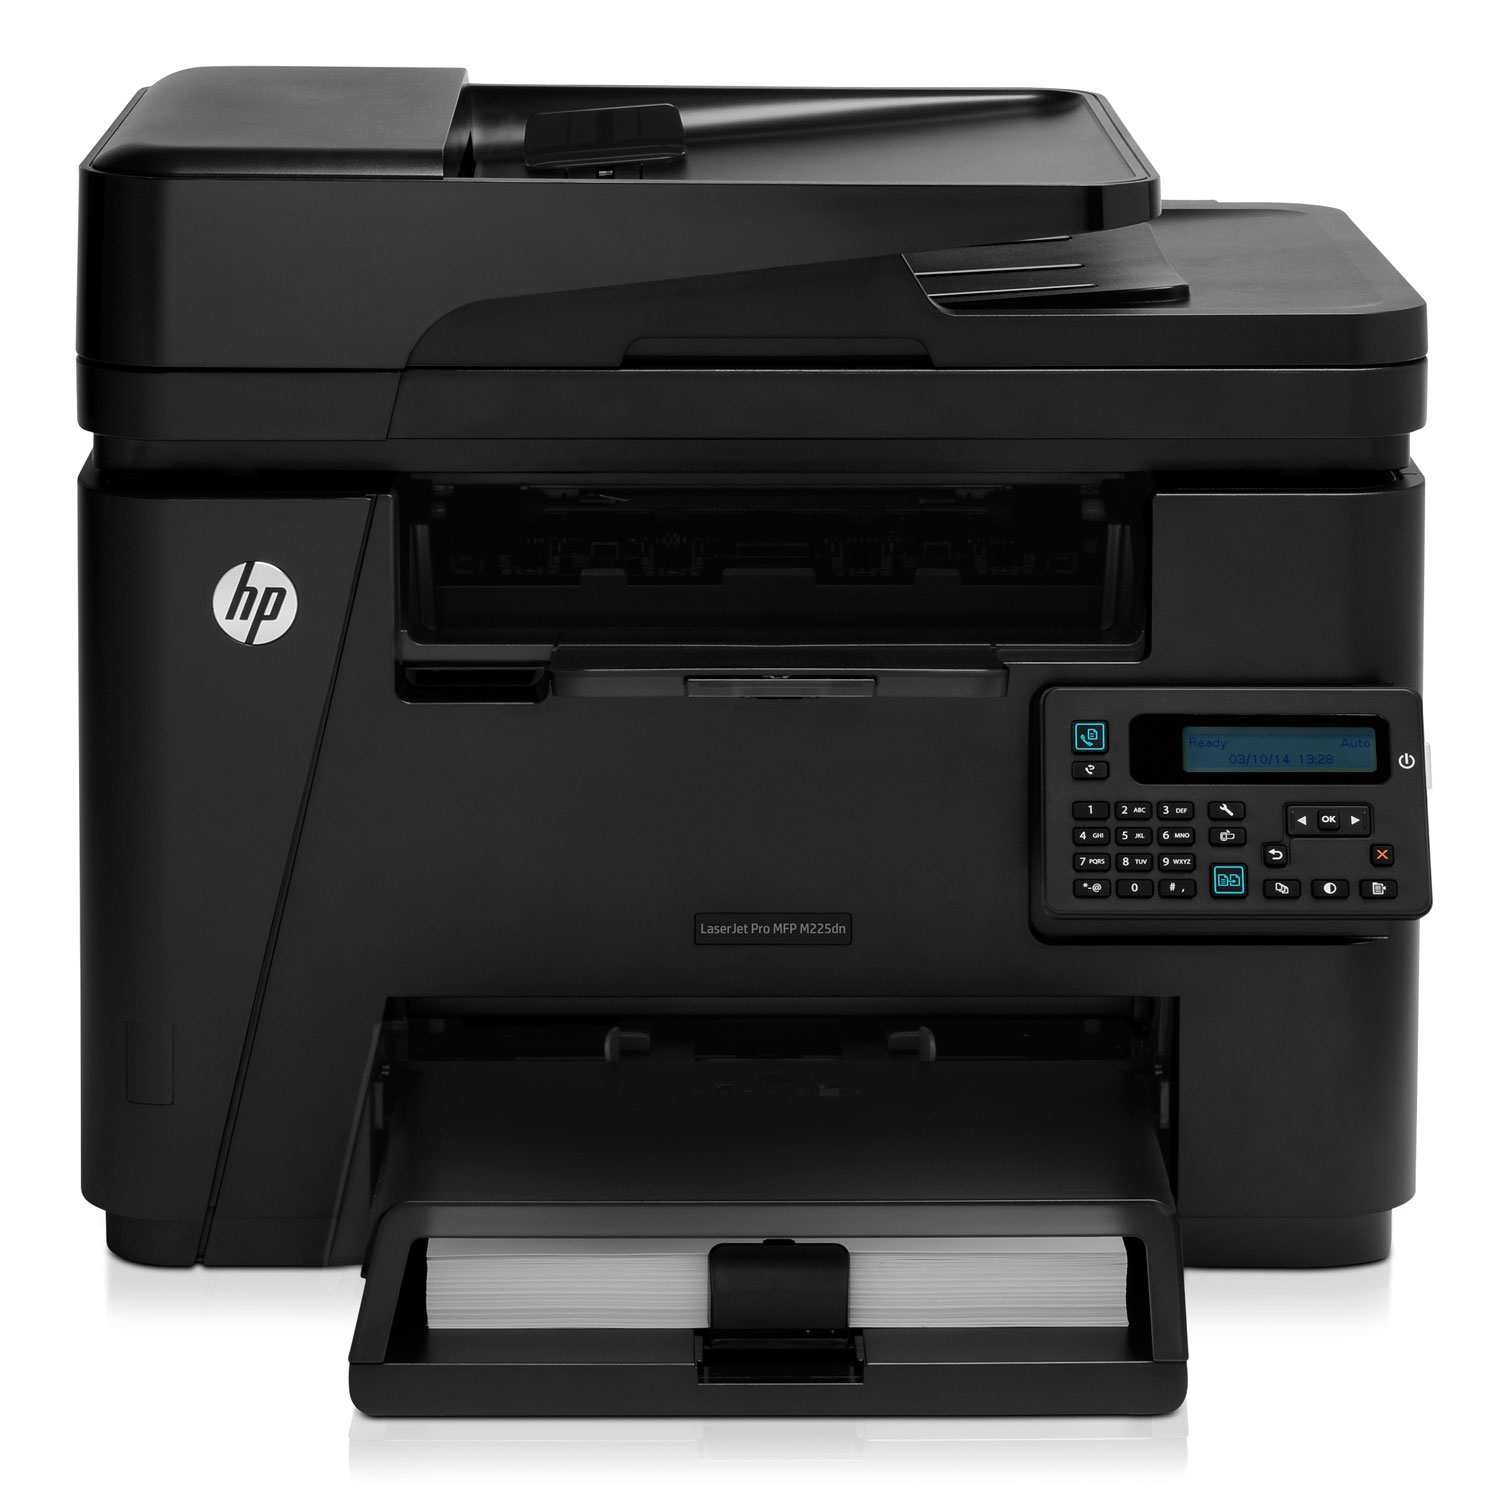 hp laserjet pro mfp m225dn imprimante multifonction hp. Black Bedroom Furniture Sets. Home Design Ideas